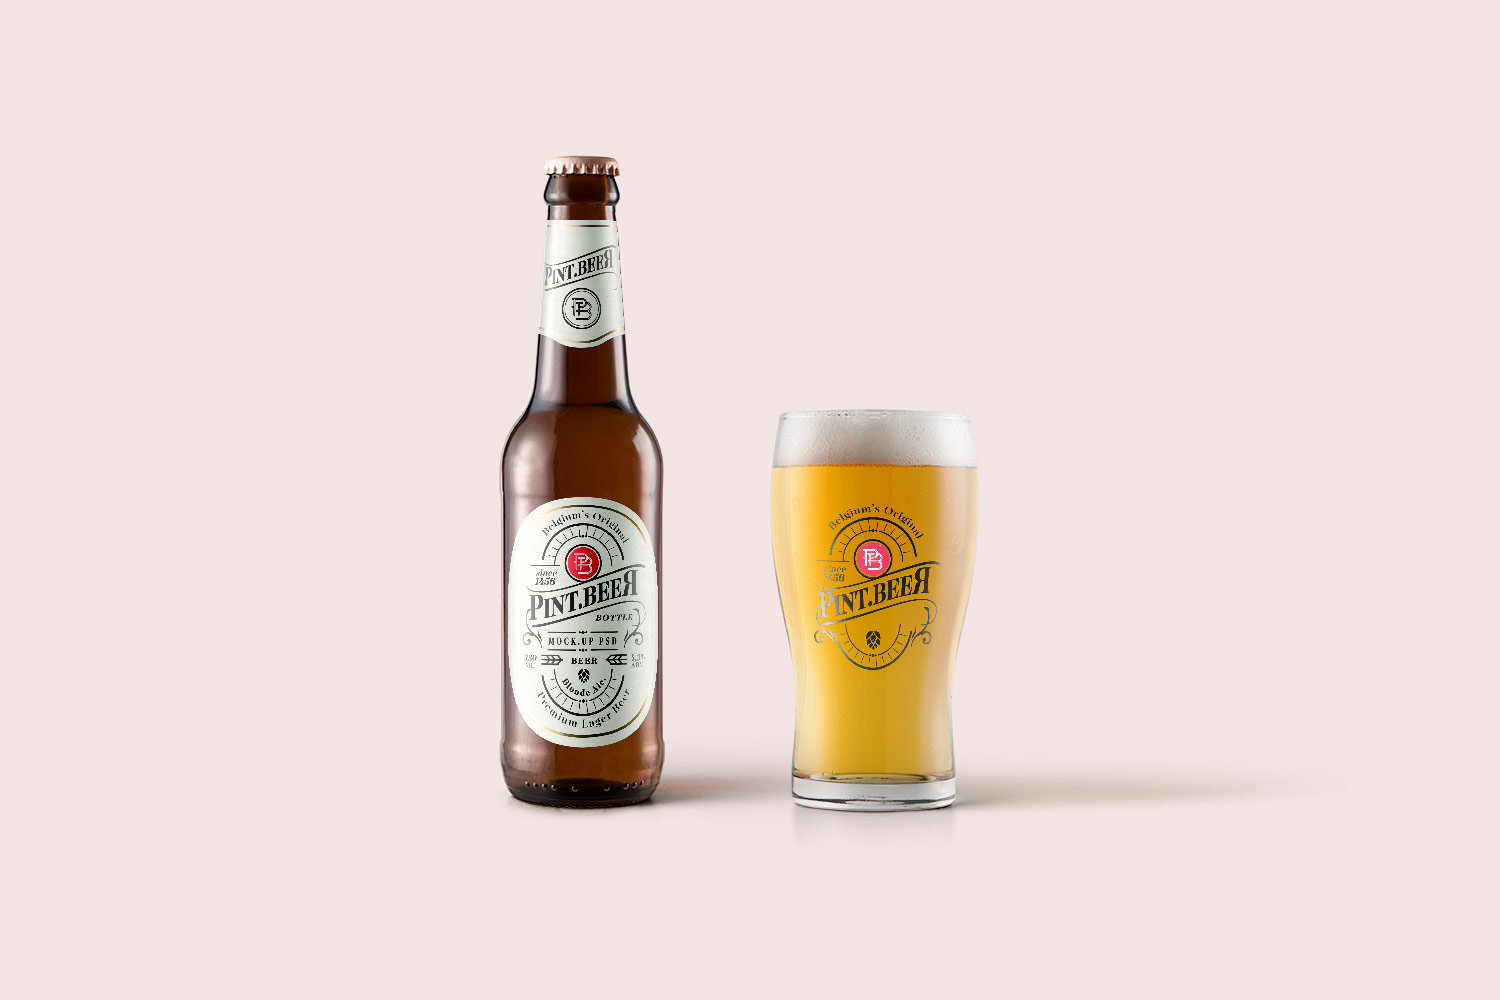 Beer Bottle & Glass Mockup PSD